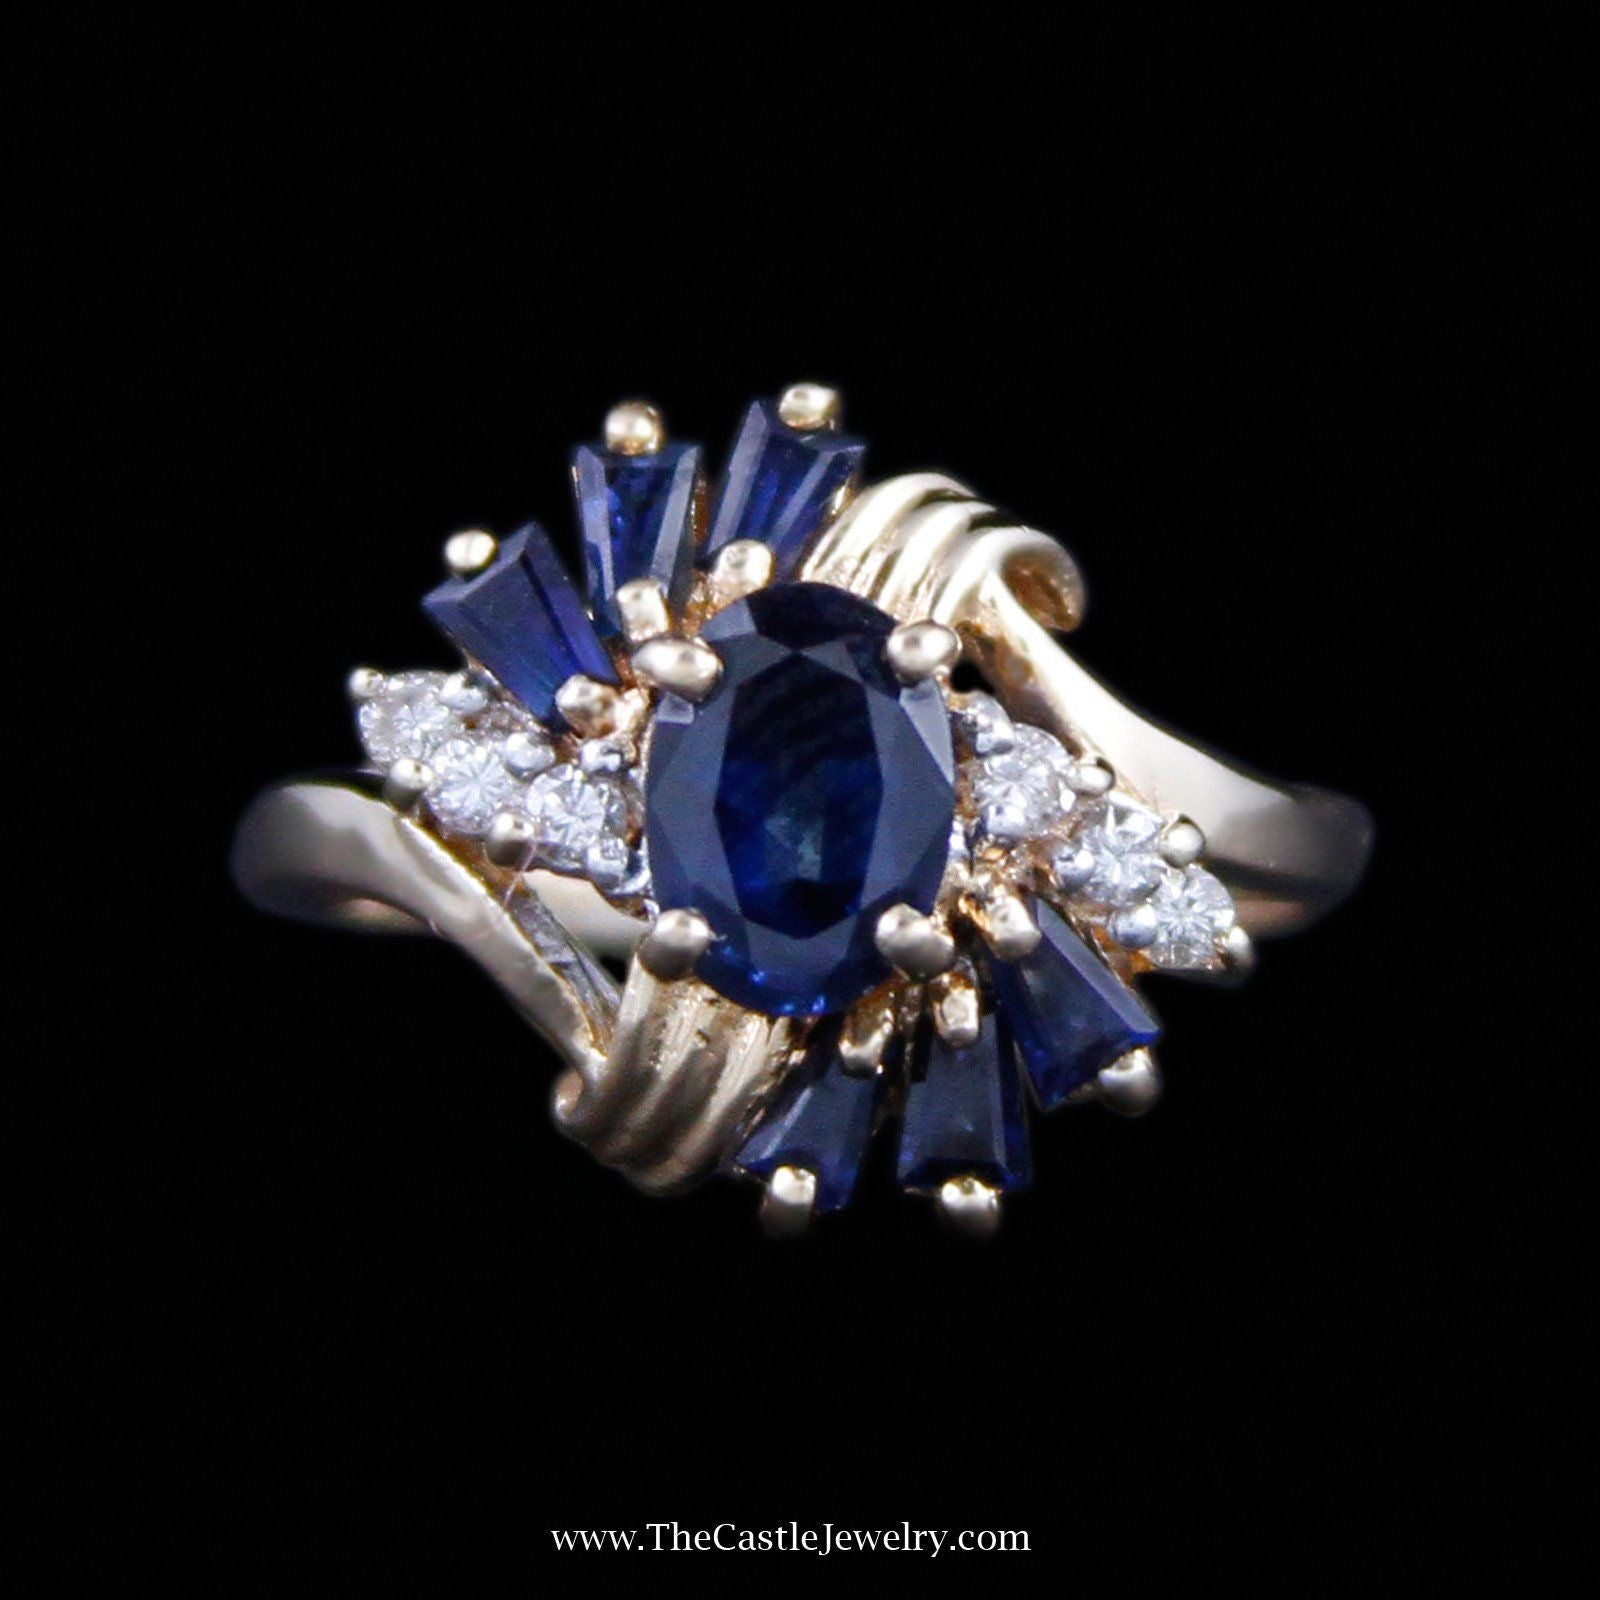 Beautiful Oval Cut Sapphire Ring with Baguette Sapphire & Round Diamond Sides